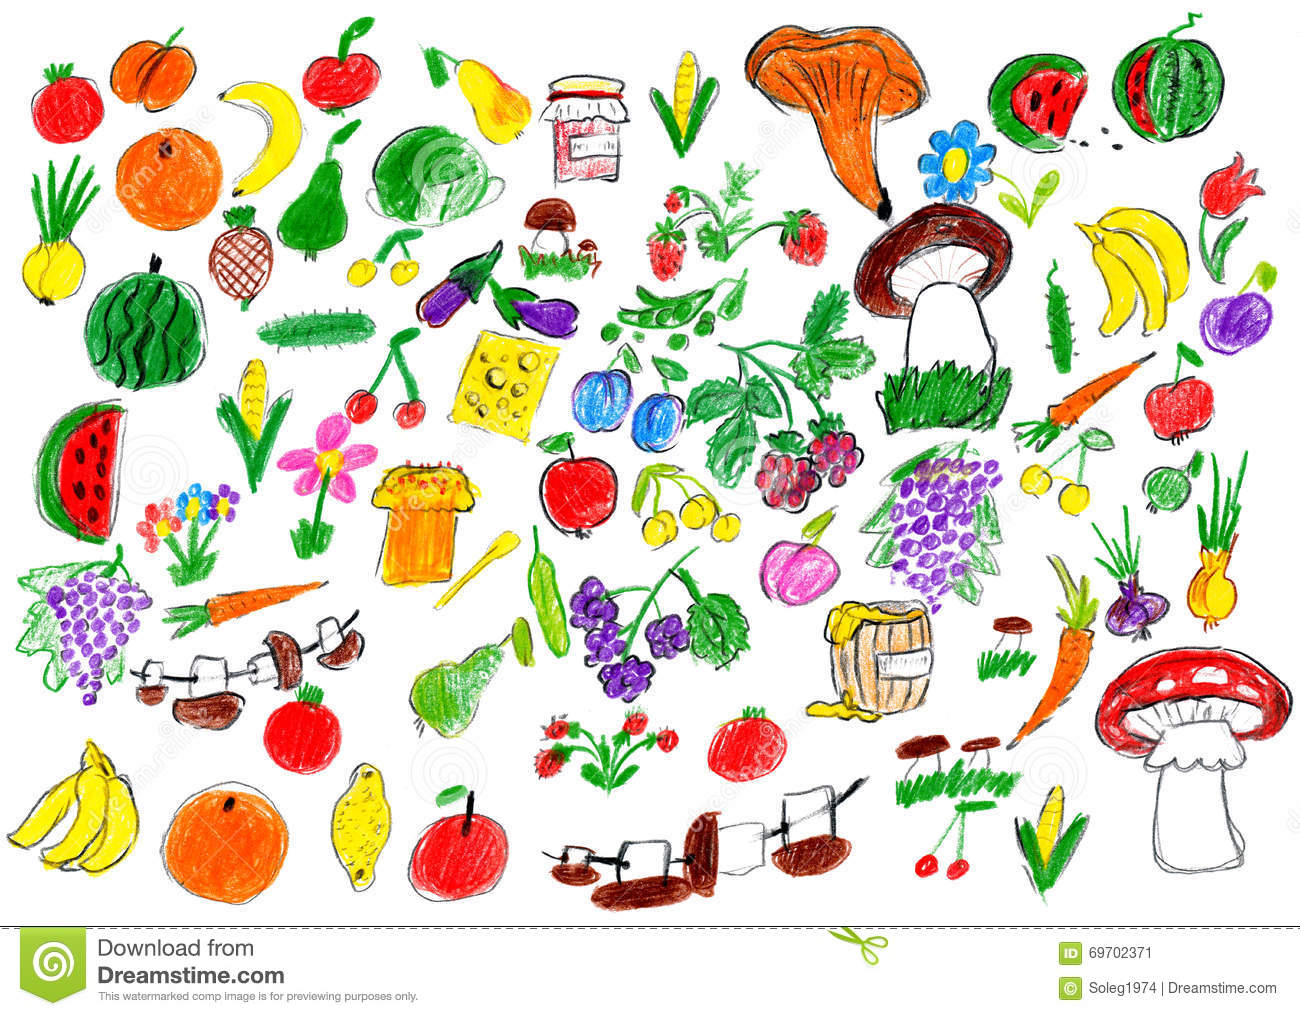 Vegetable garden kids drawing - Vegetable Garden Kids Drawing Vegetable Garden Kids Drawing Vegetable Garden Kids Drawing Vegetable Garden Kids